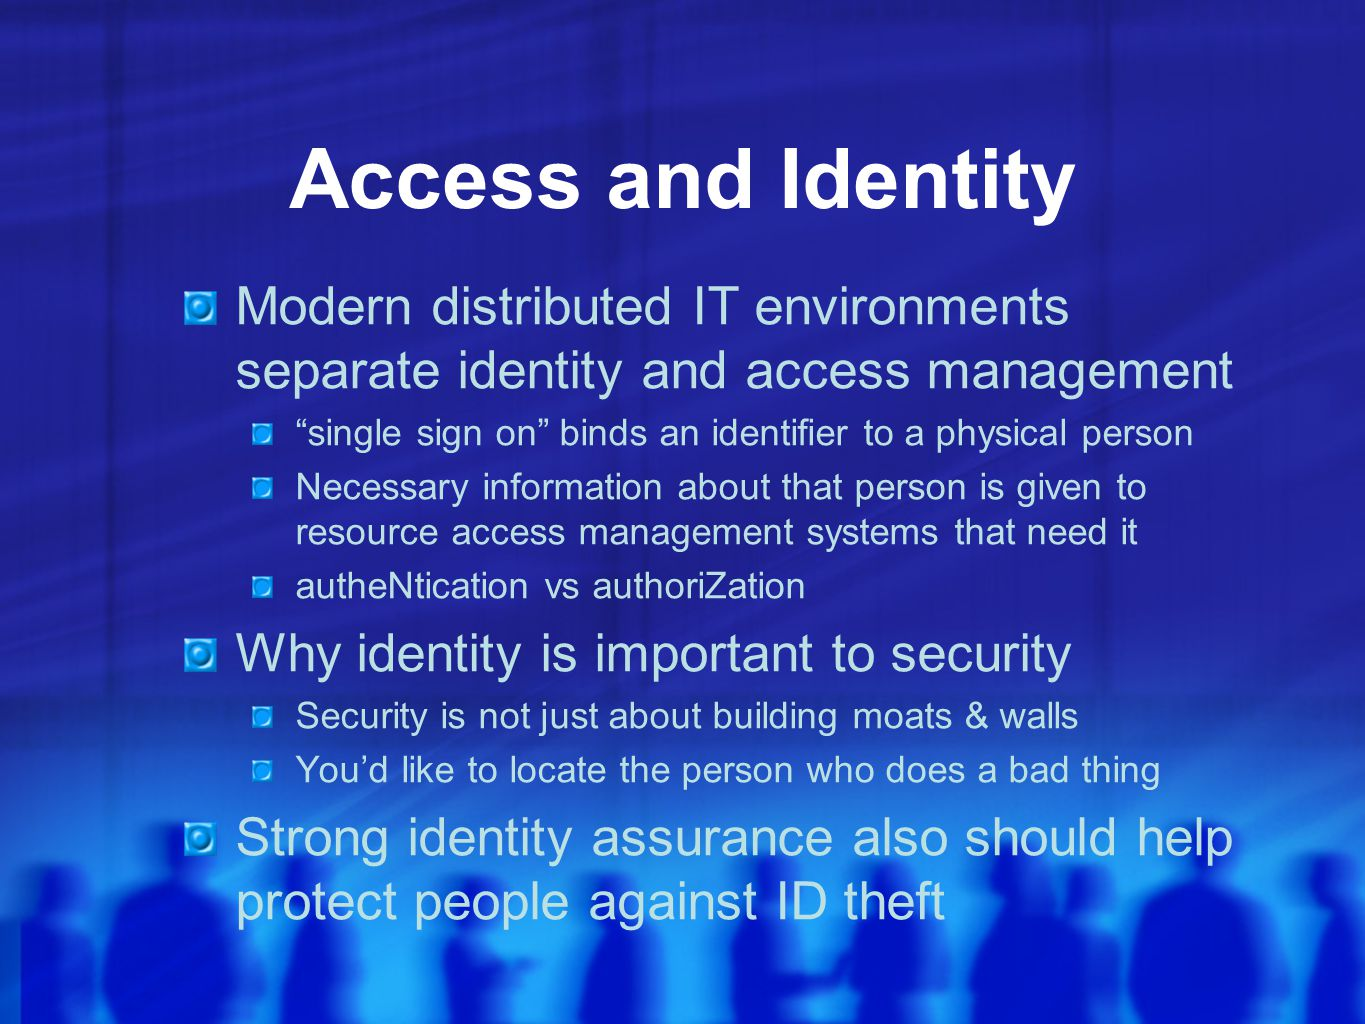 Access and Identity Modern distributed IT environments separate identity and access management single sign on binds an identifier to a physical person Necessary information about that person is given to resource access management systems that need it autheNtication vs authoriZation Why identity is important to security Security is not just about building moats & walls You'd like to locate the person who does a bad thing Strong identity assurance also should help protect people against ID theft